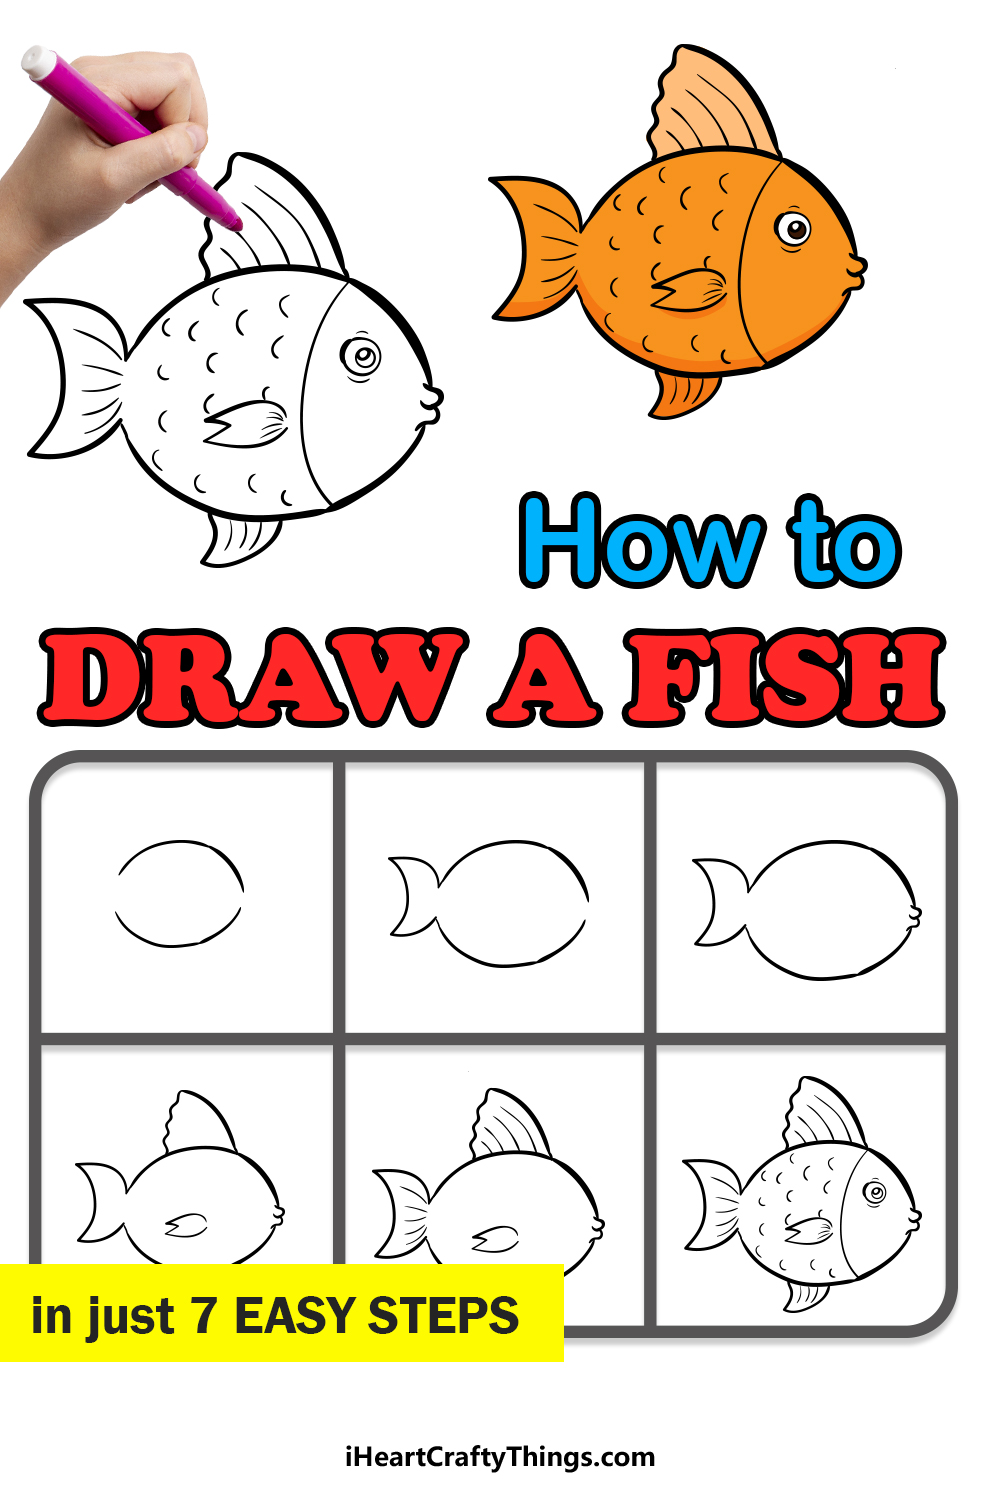 how to draw a fish in 7 easy steps